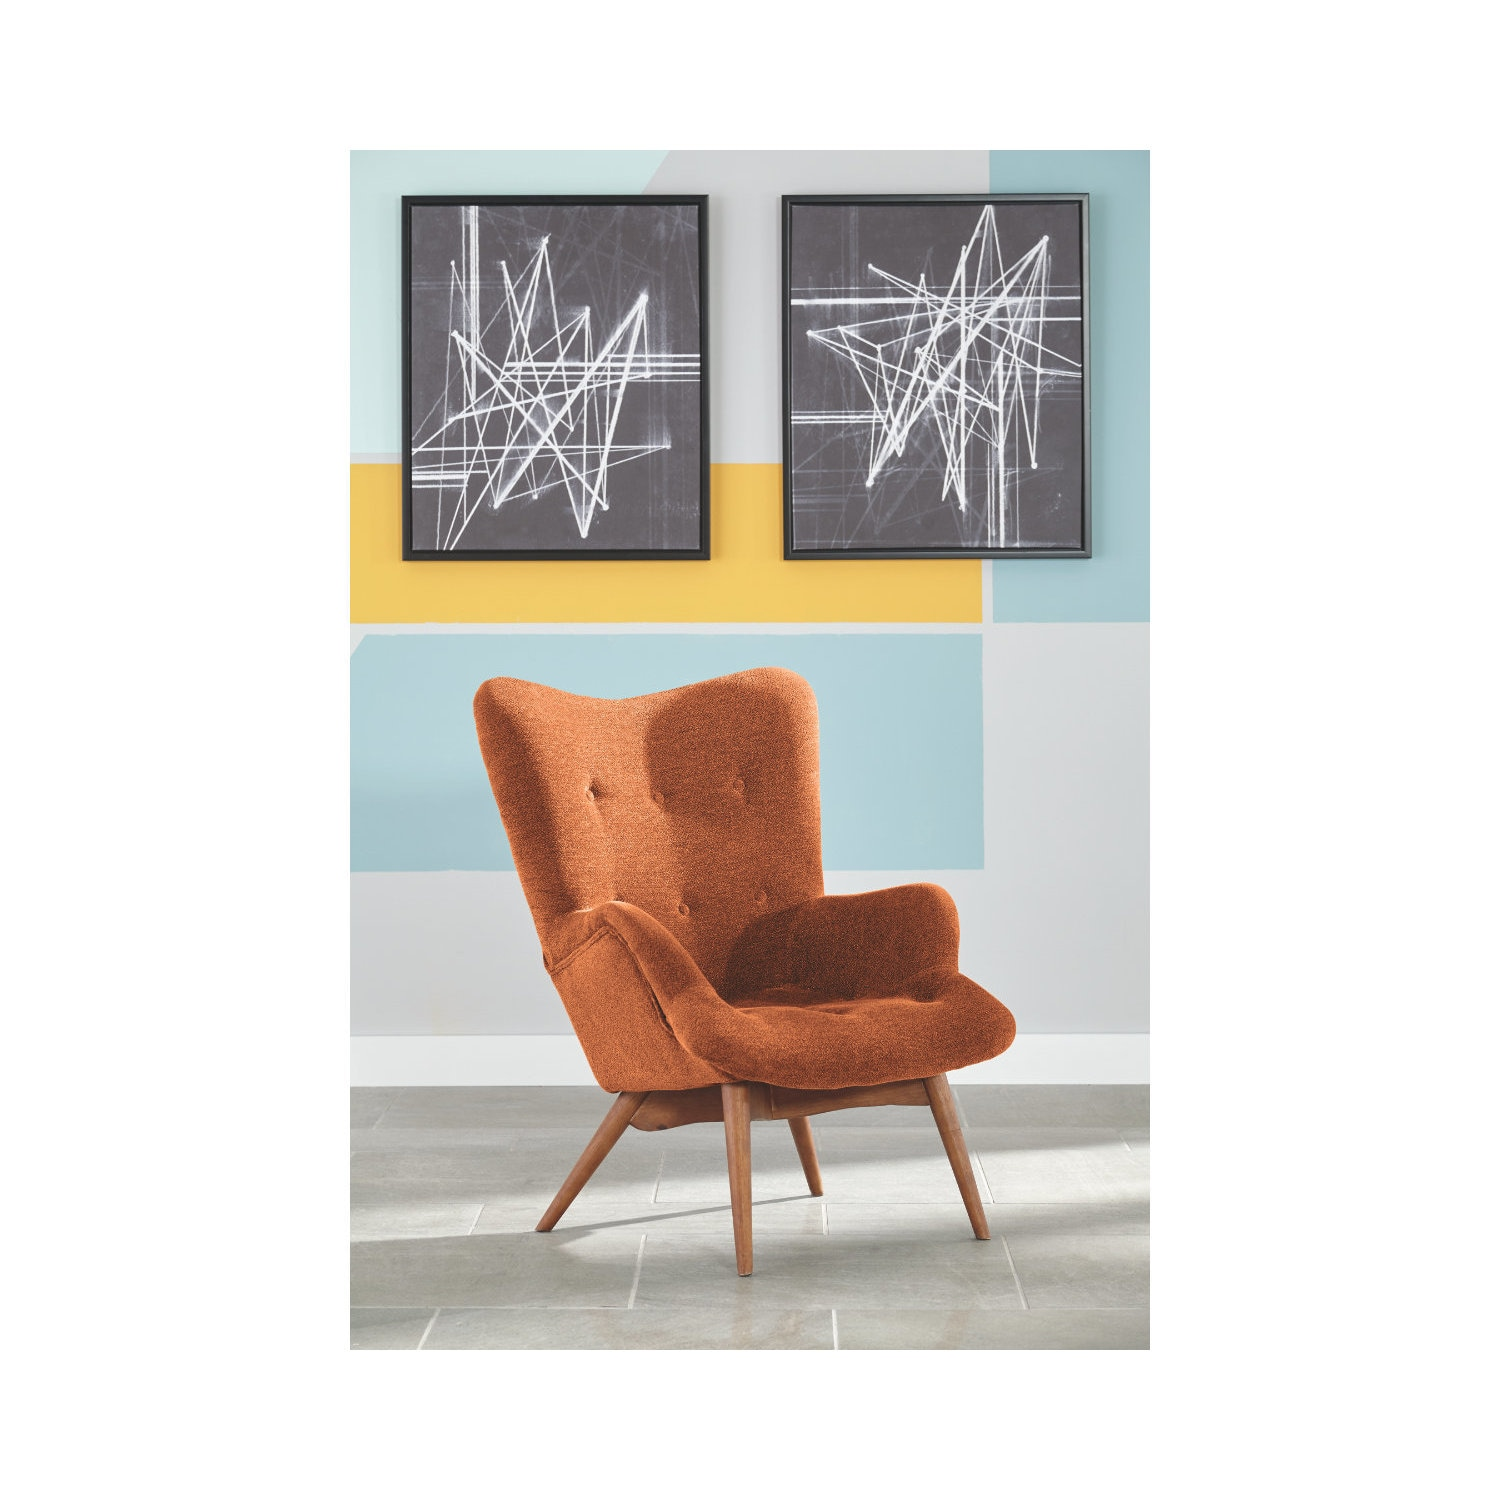 Phenomenal Pelsor Orange Accent Chair Pabps2019 Chair Design Images Pabps2019Com